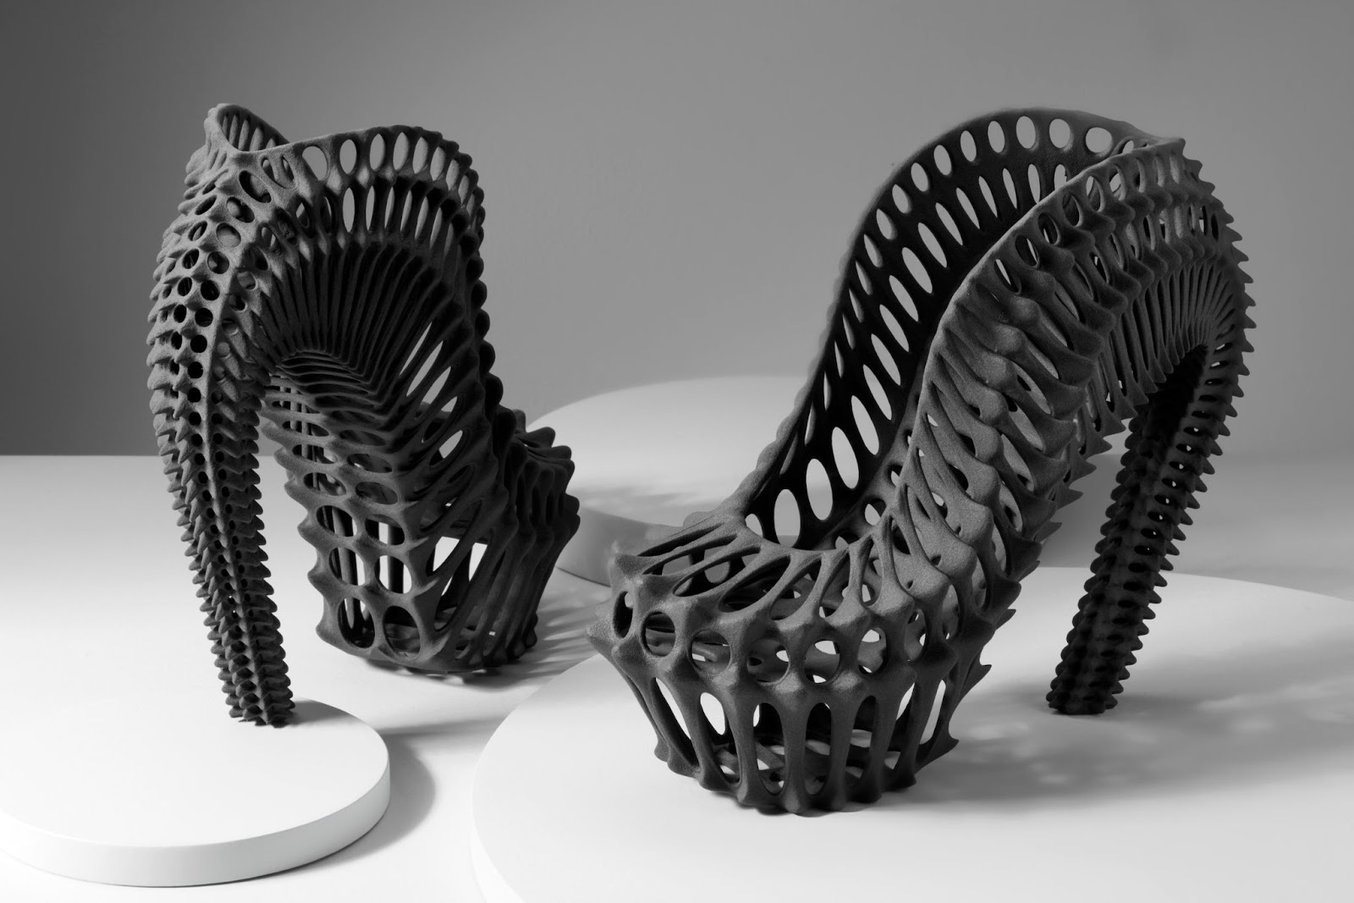 SLS 3D printing is ideal for intricate models and complex geometries. Part printed on a Fuse 1 SLS 3D printer.